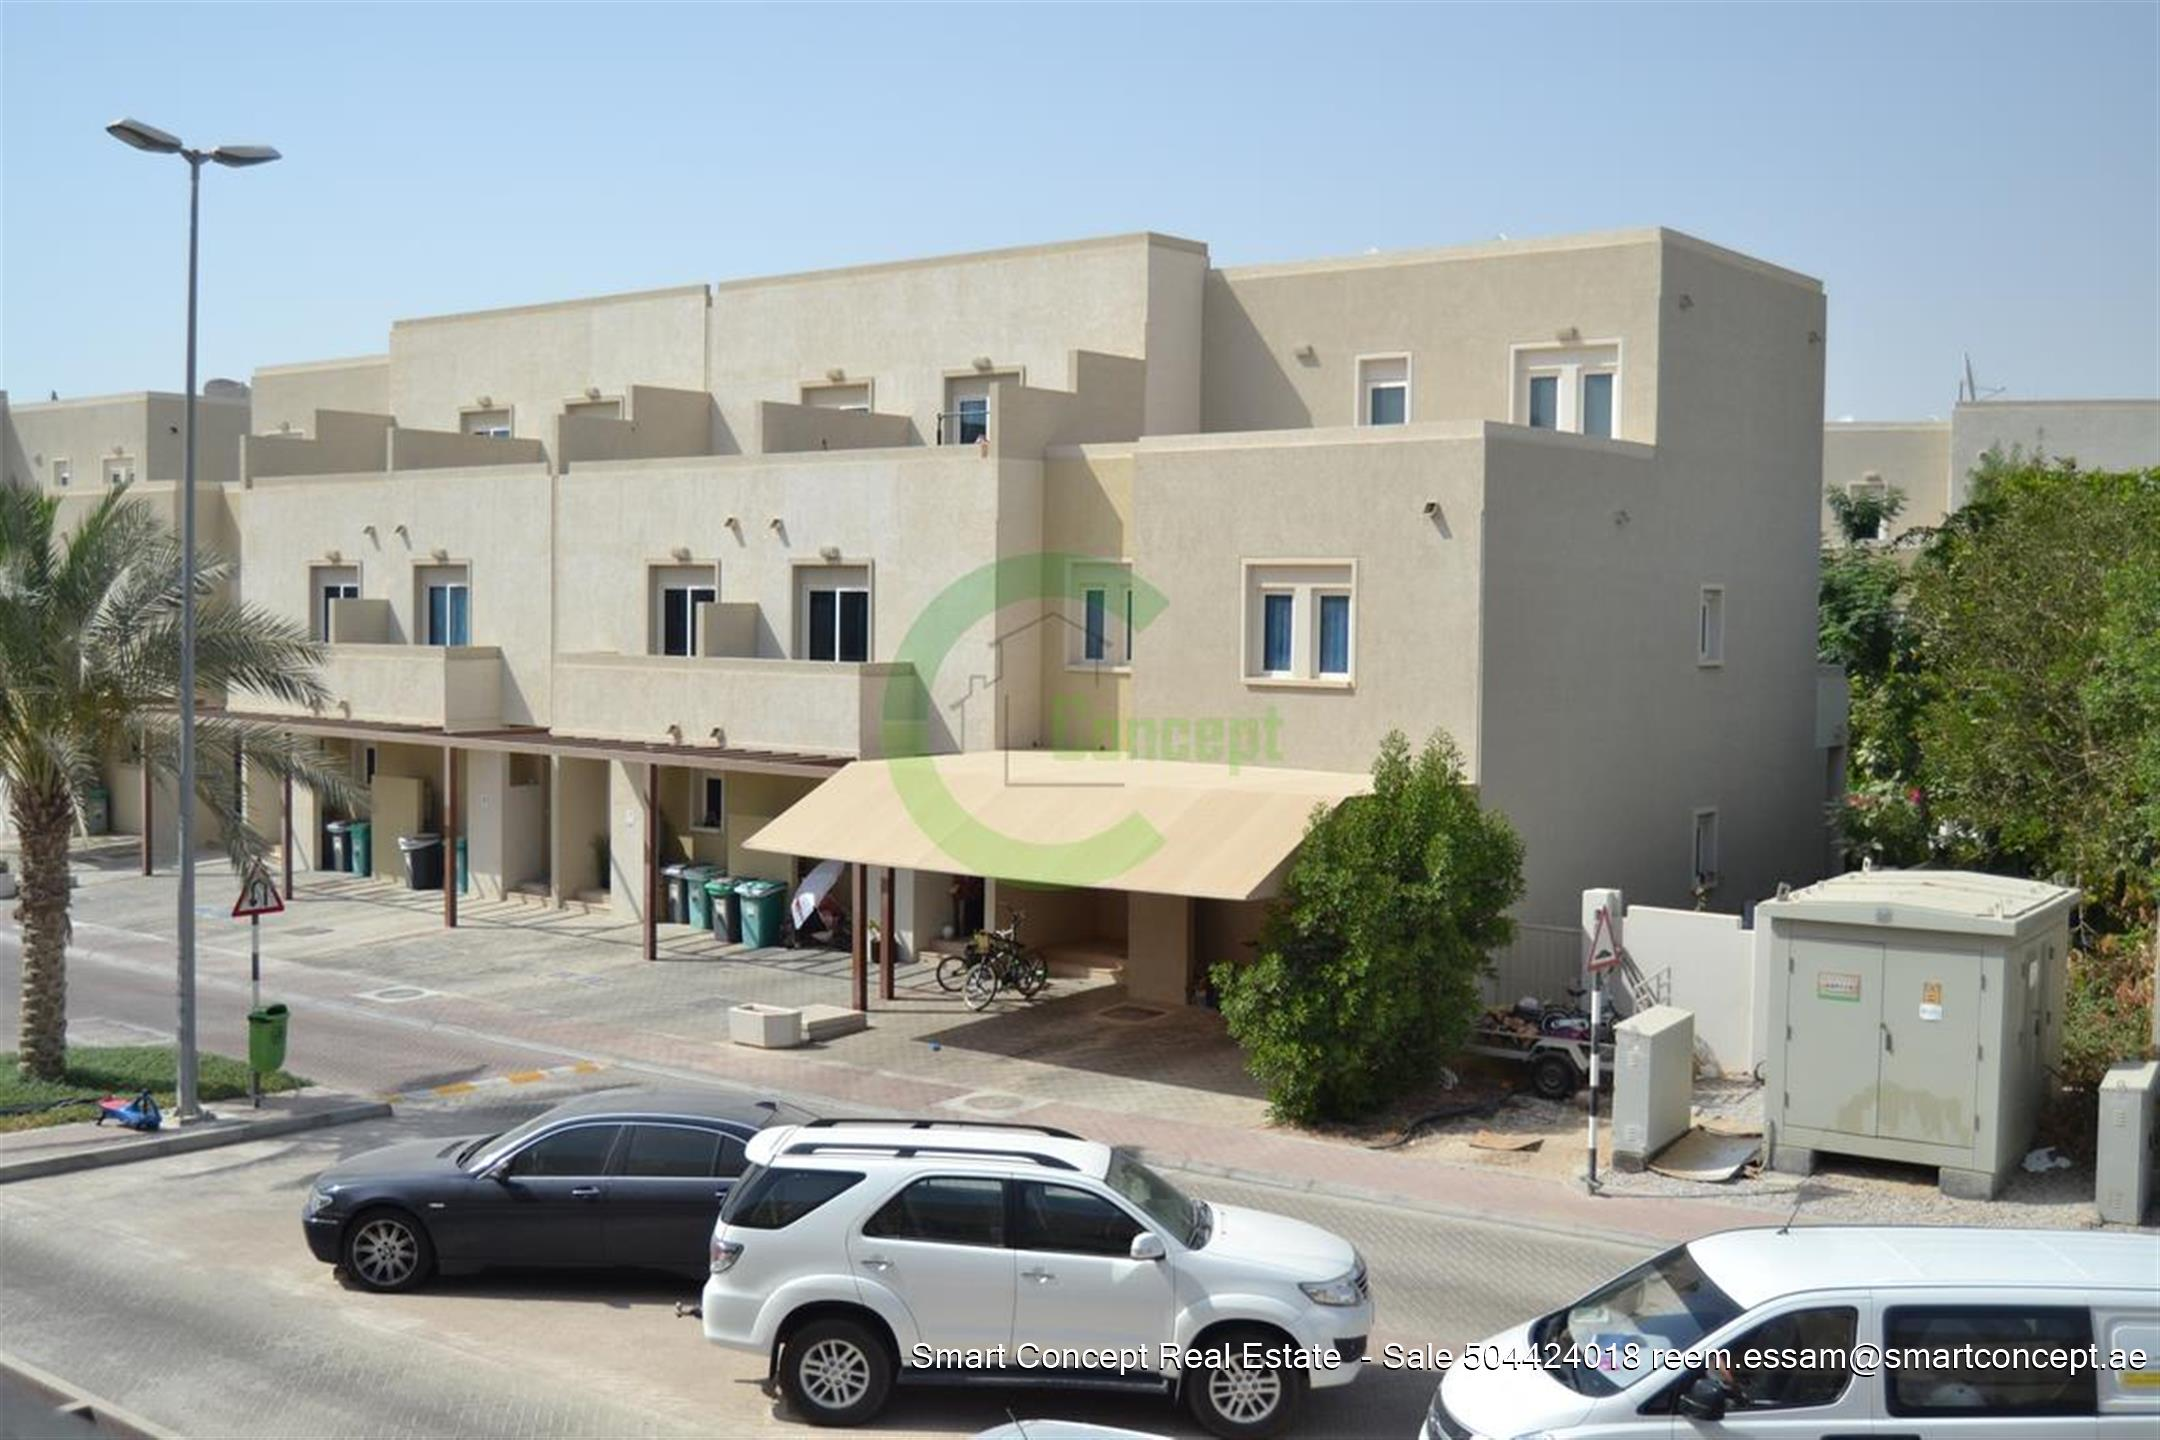 4 Bedroom Villa W/ Maids Room In Al Reef